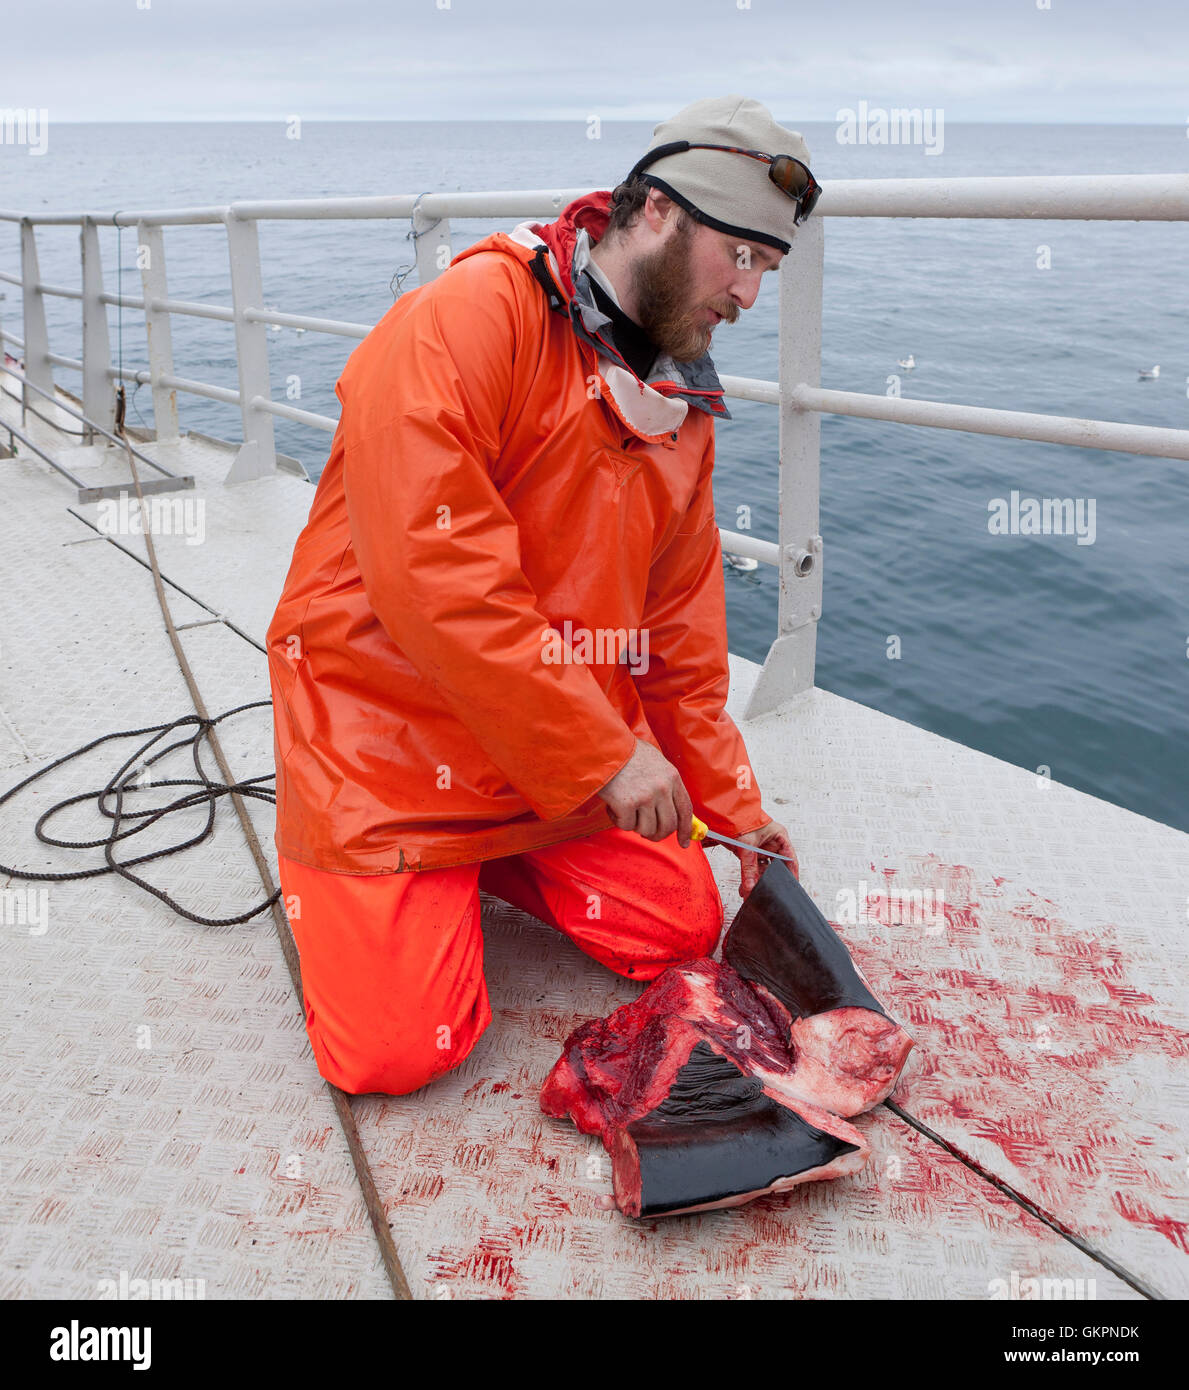 Research scientist cuts a piece of meat from a Minke Whale, Hrafnreydur KO-100, whaling ship, Iceland - Stock Image